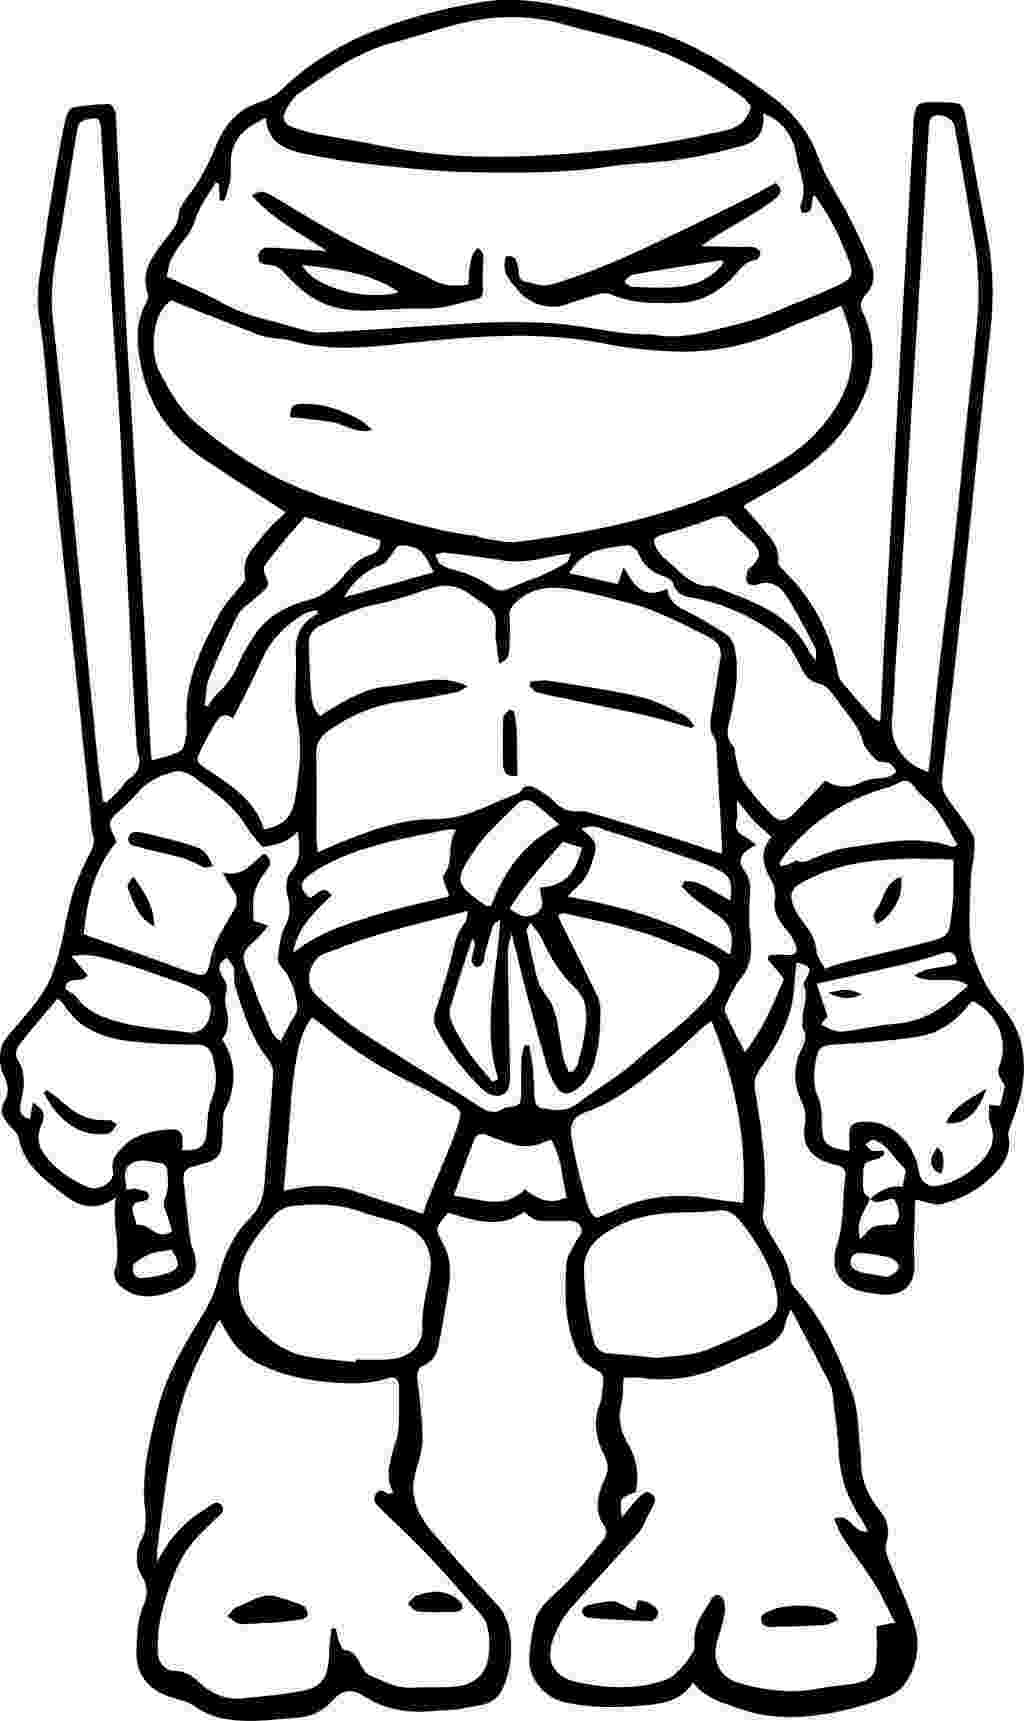 ninja turtles face coloring pages ninja turtle face coloring pages turtles face coloring pages ninja